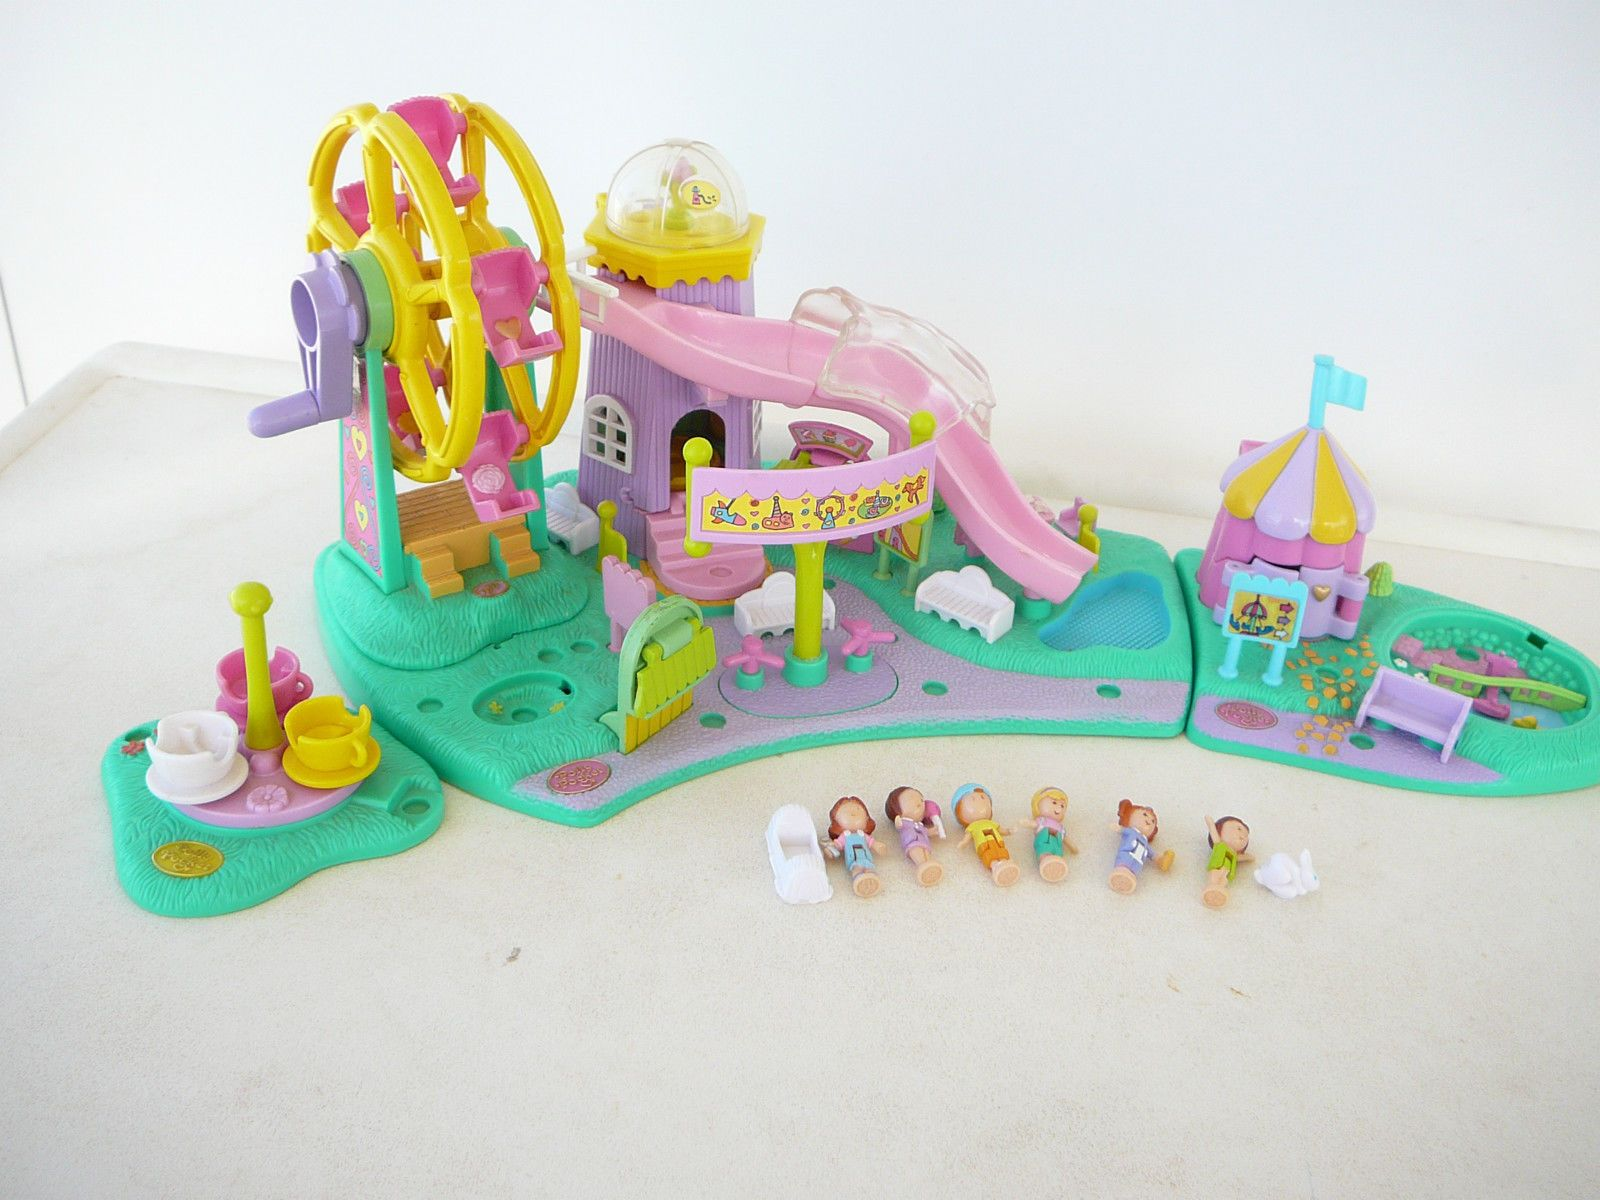 Claasic vintage toys vintage toys second shout out http www - Vintage Circus Paper Toys See More Polly Pocket 1996 Rides N Surprises Playset Aka Ferris Wheel And Tower Slide 1996